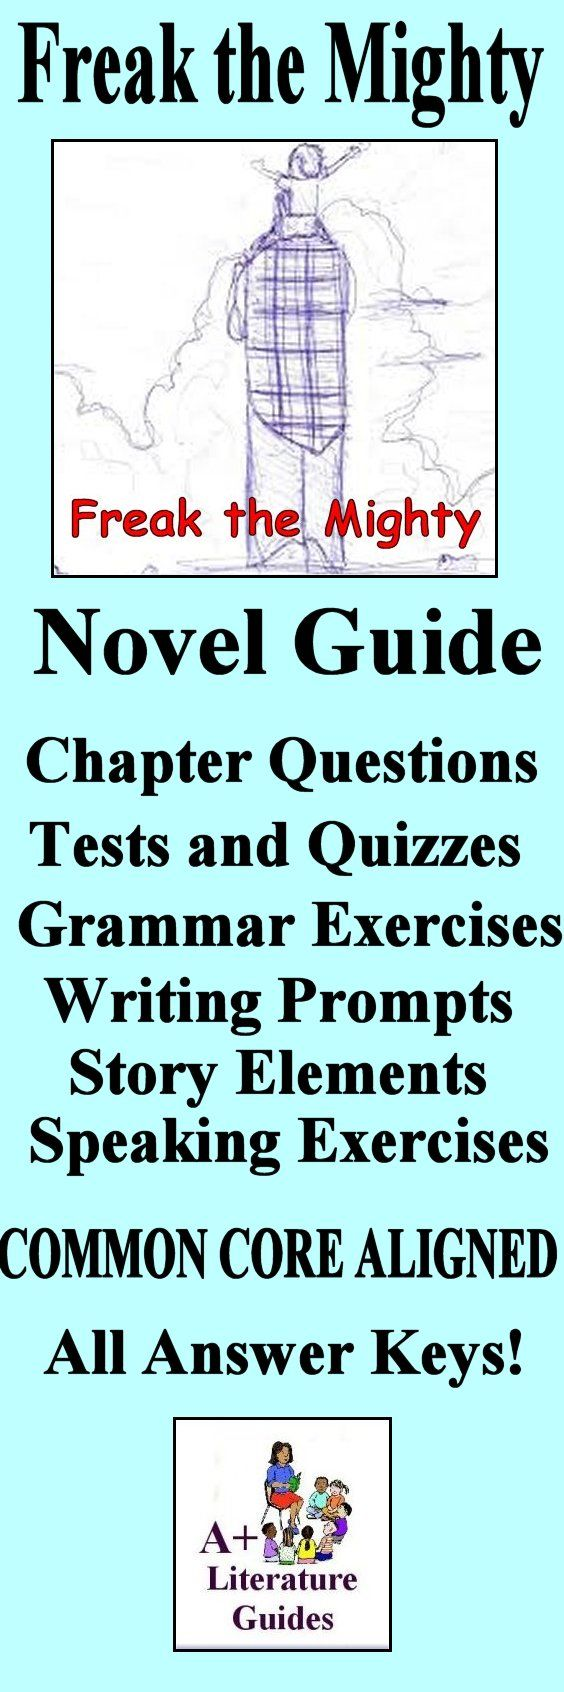 final essay test for freak the Read this guide to learn how to write an essay for year 11 and 12 writing practice essays is an essential part of getting band 6 for english.